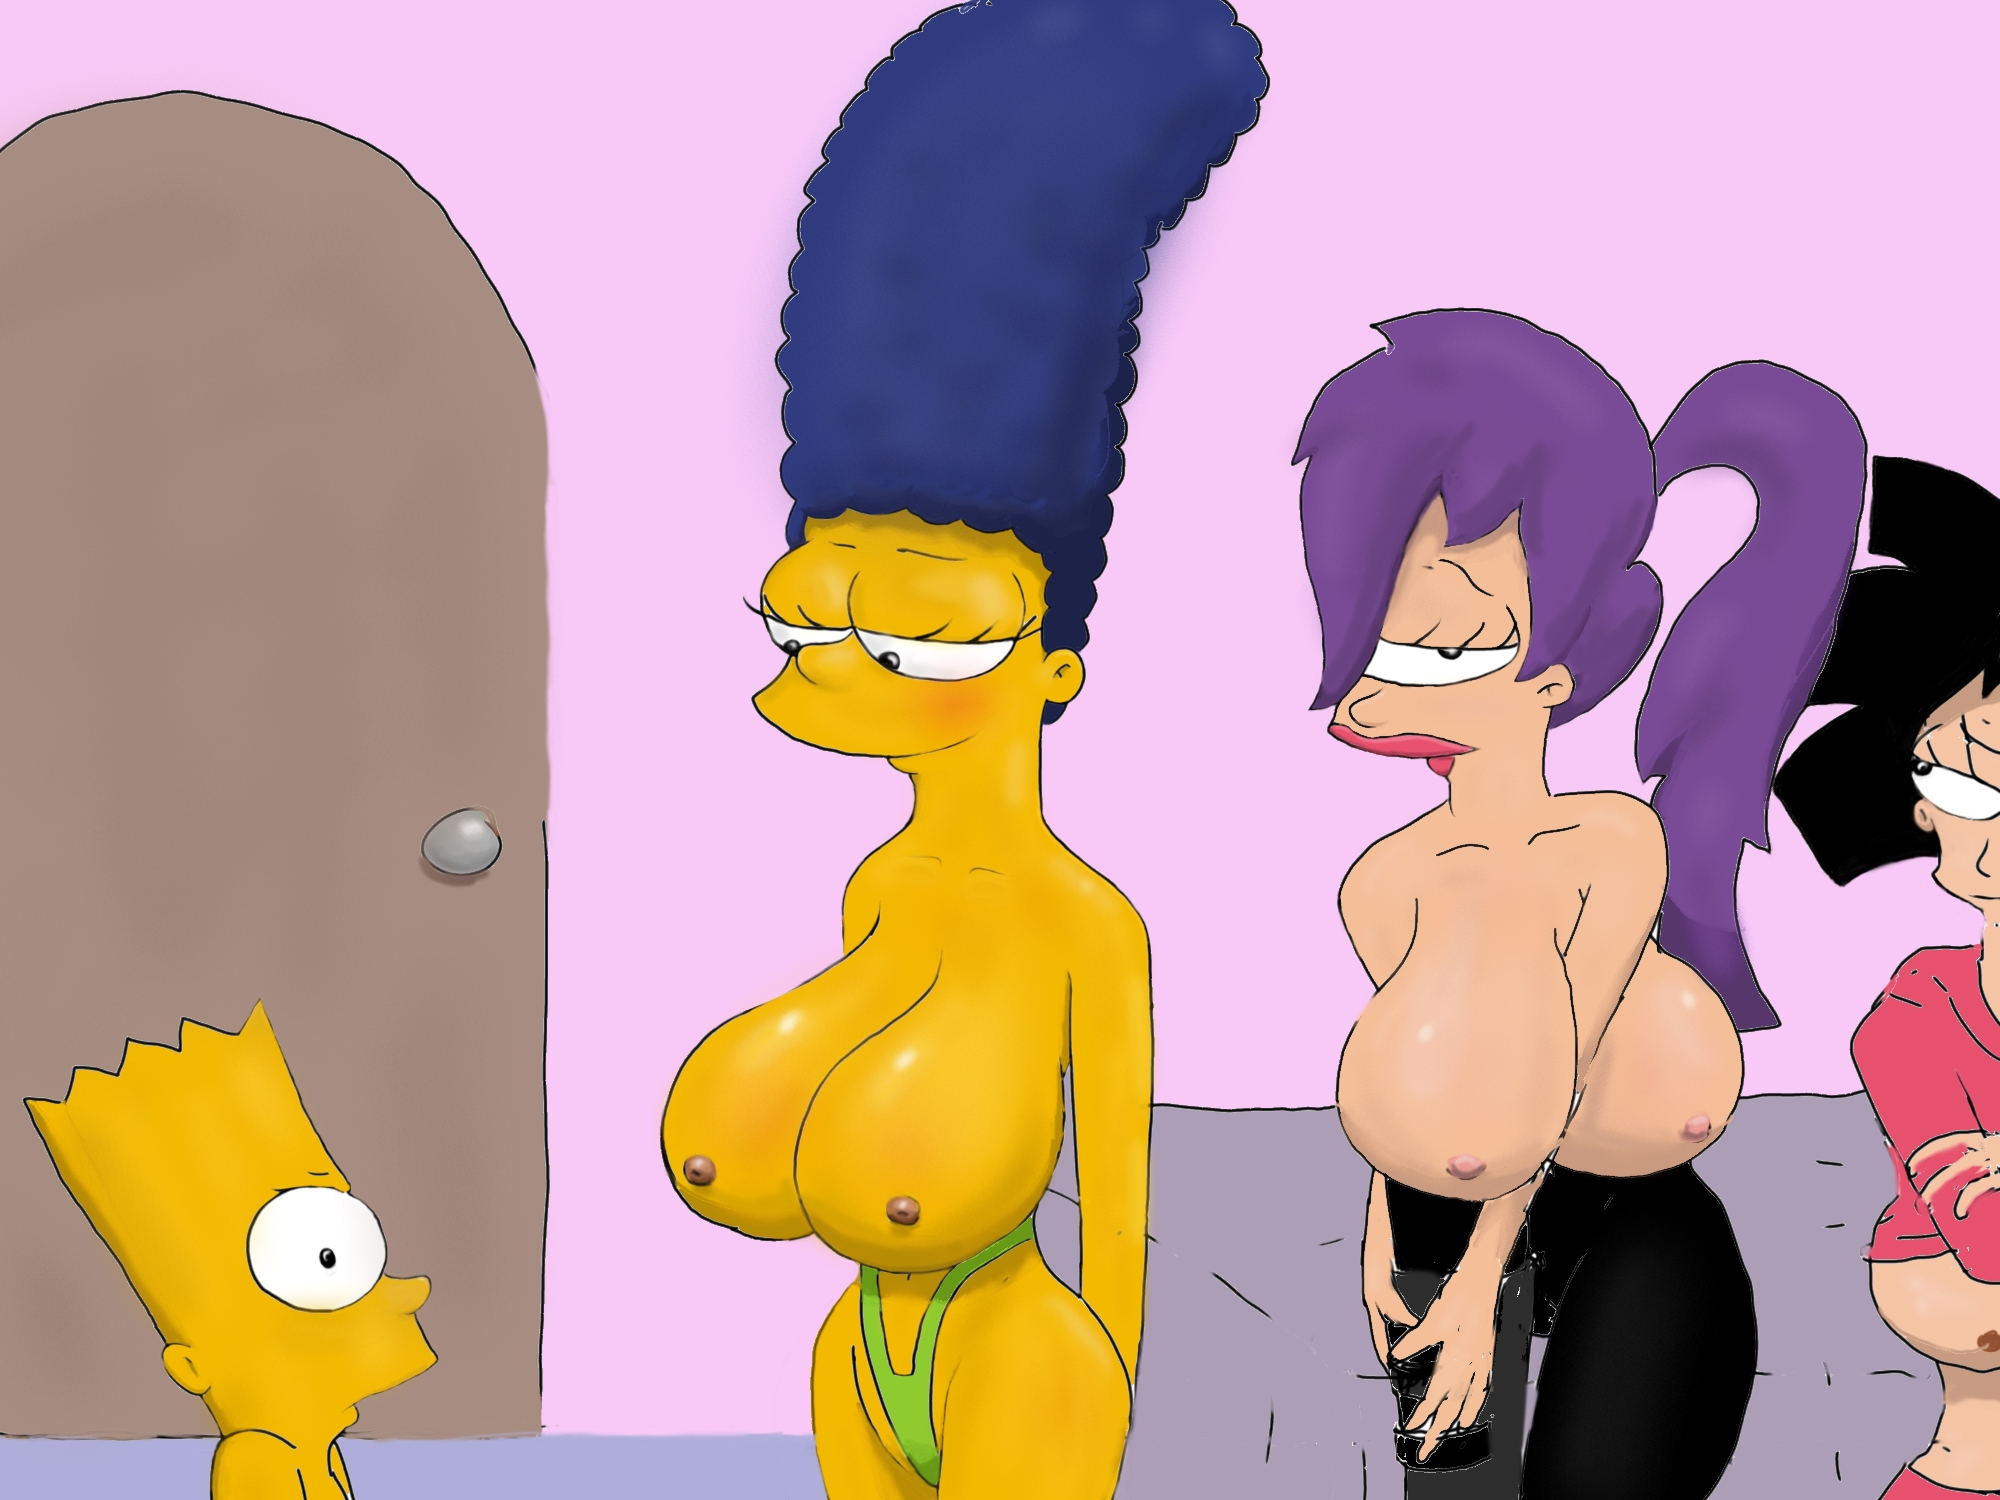 Nude cartoon pict porncraft scene